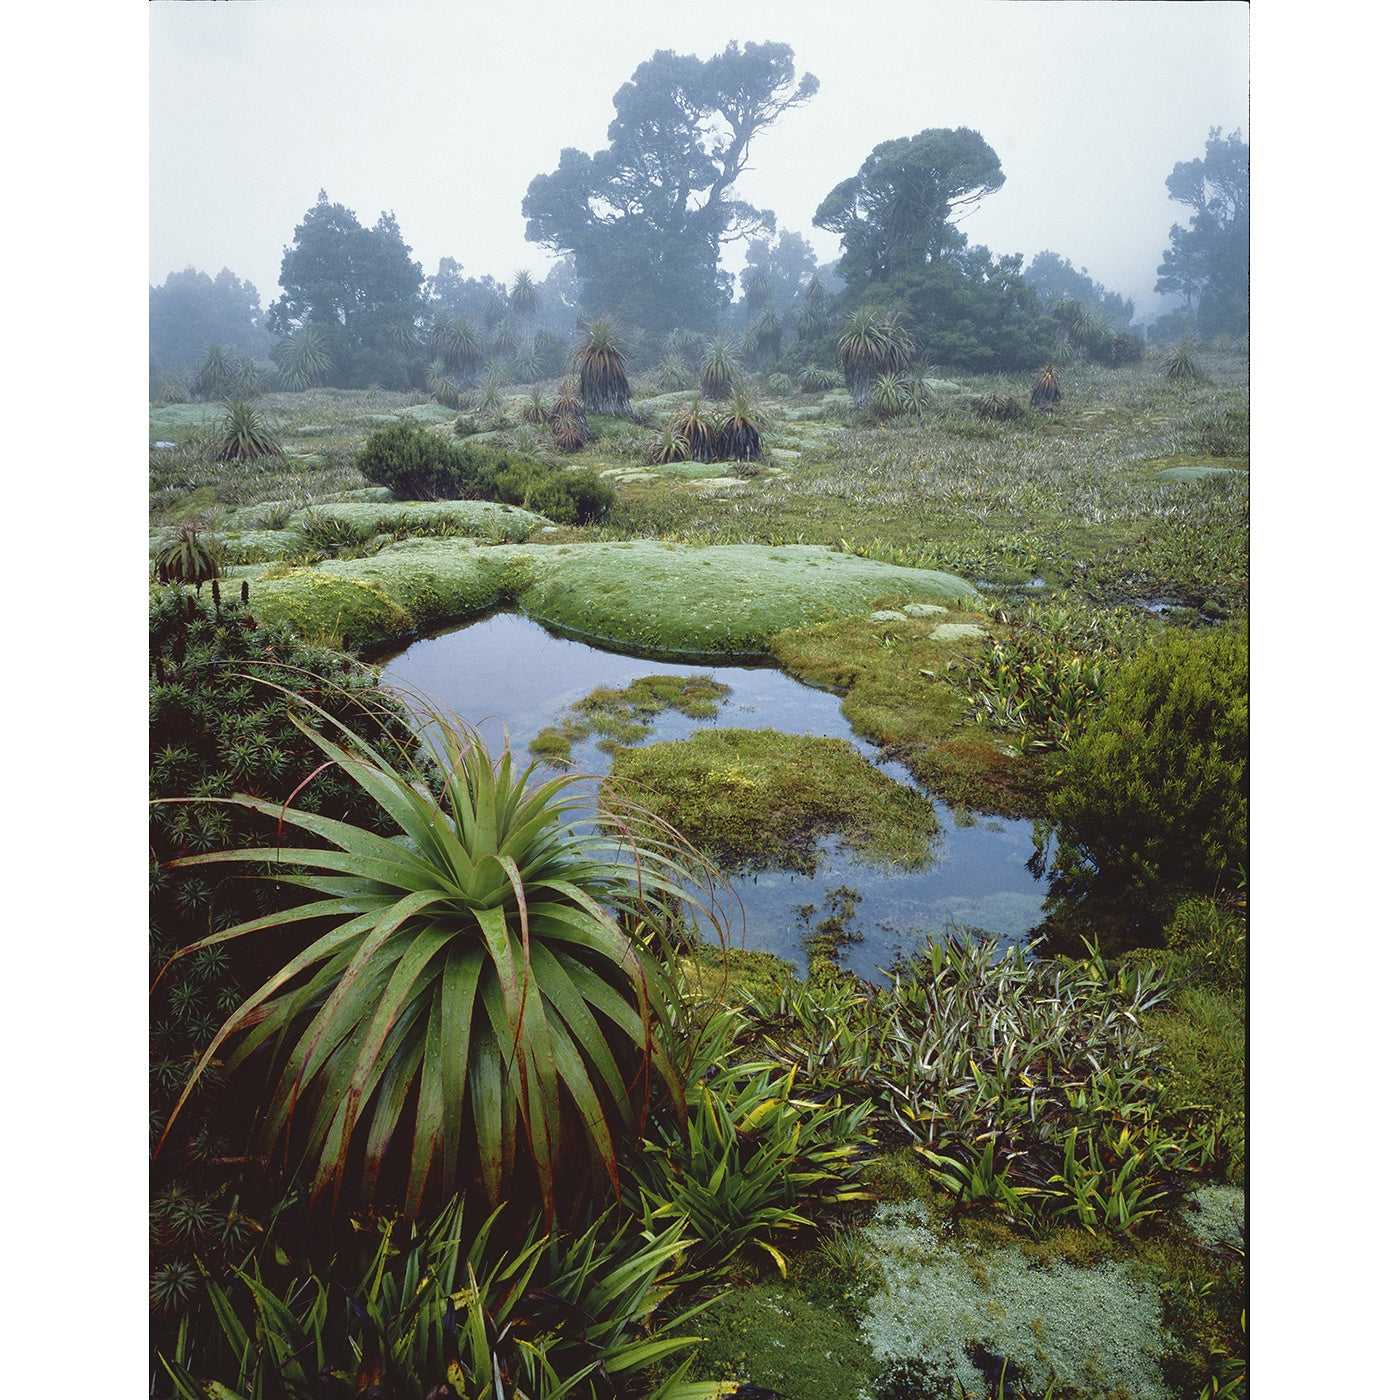 Peter Dombrovskis - Cushion Plants and Pandanis in Mist